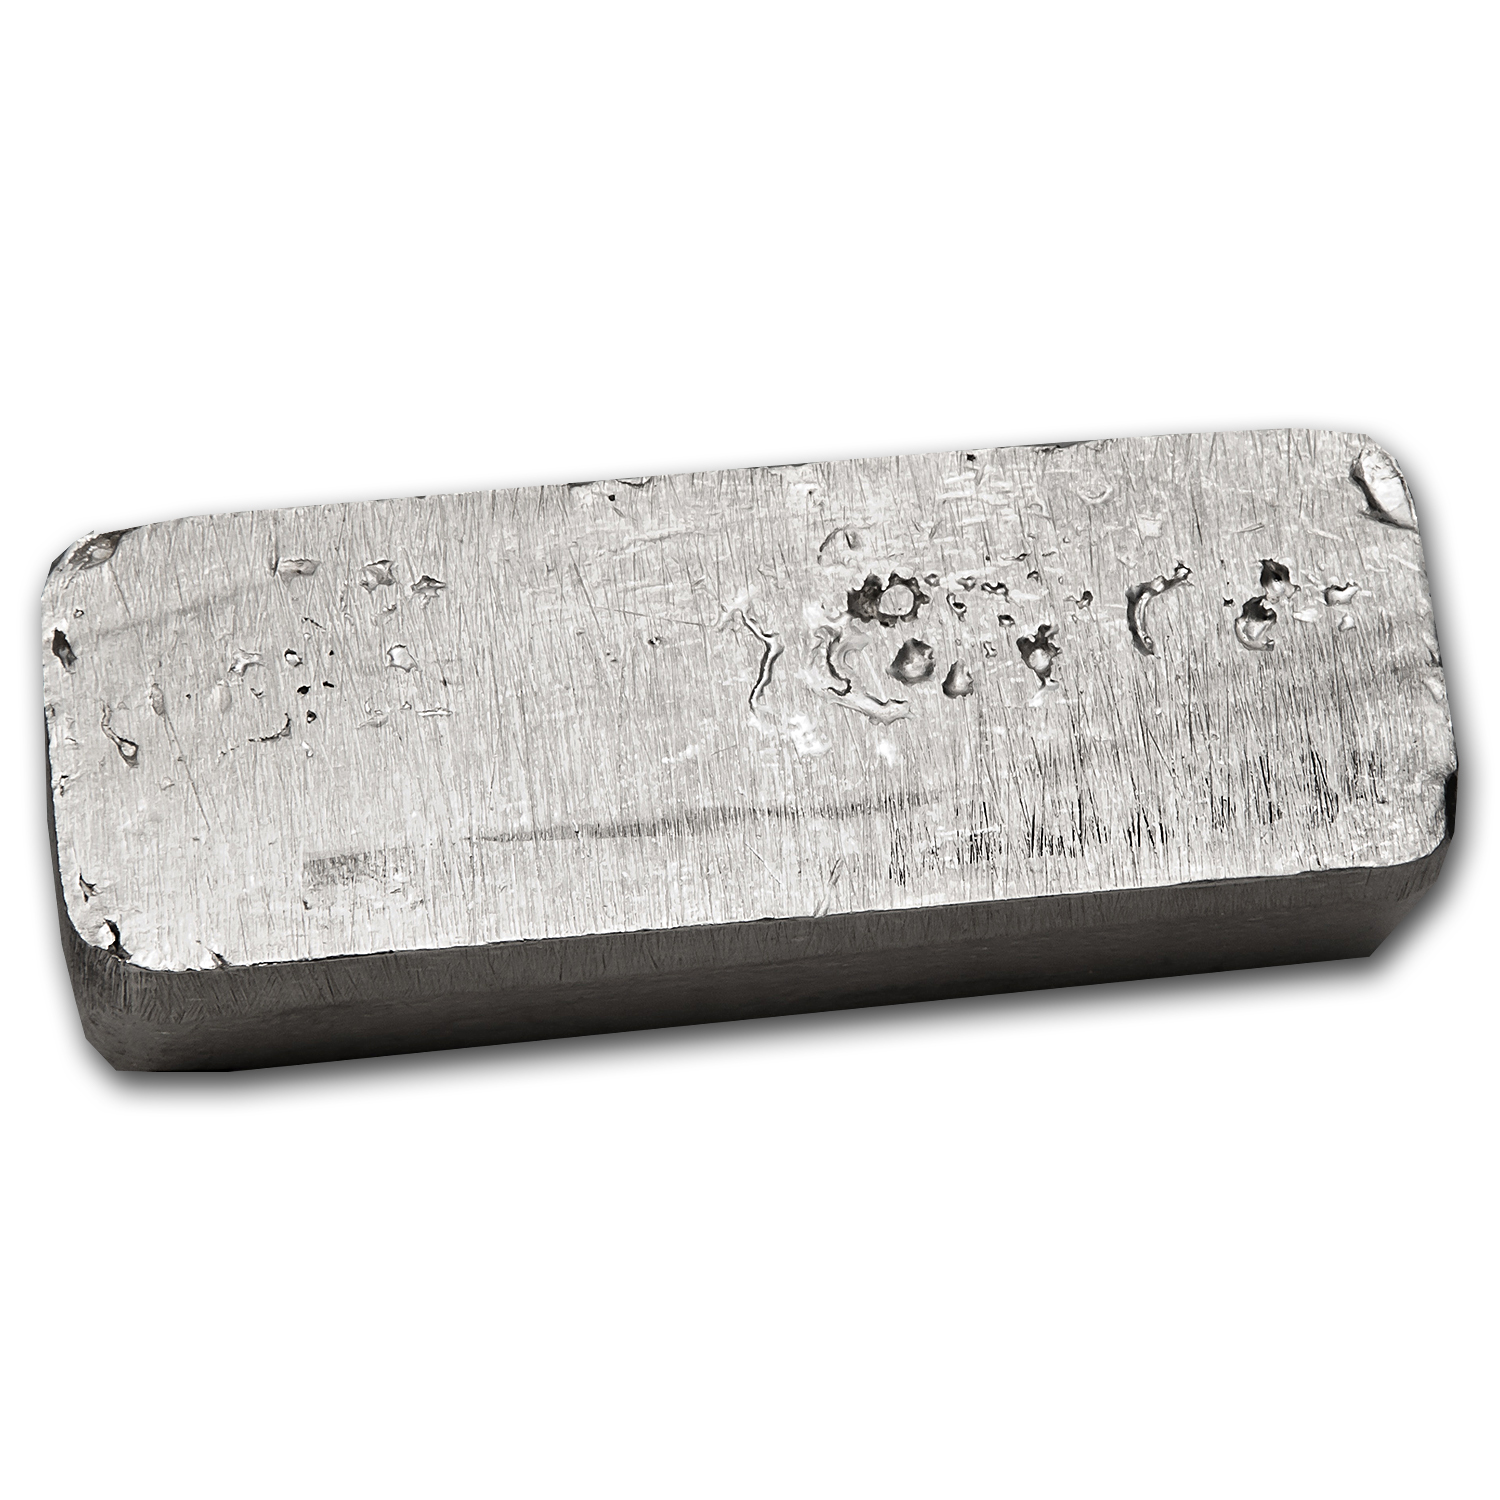 25 oz Silver Bars - Phoenix Precious Metals Ltd